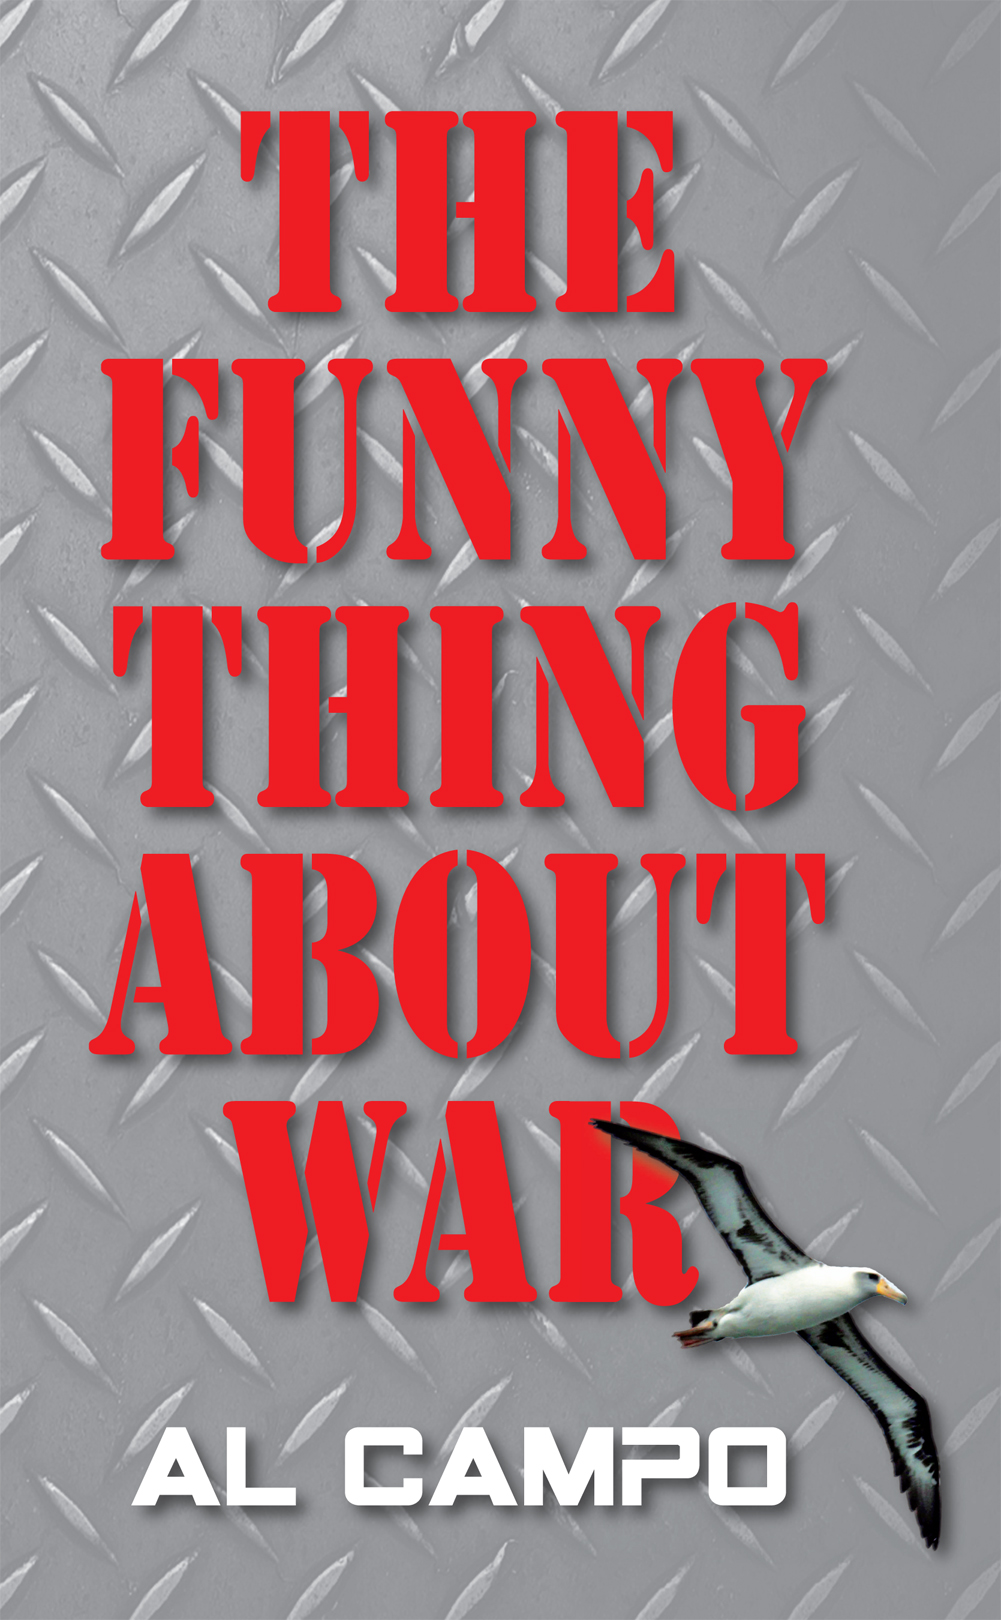 The Funny Thing About War